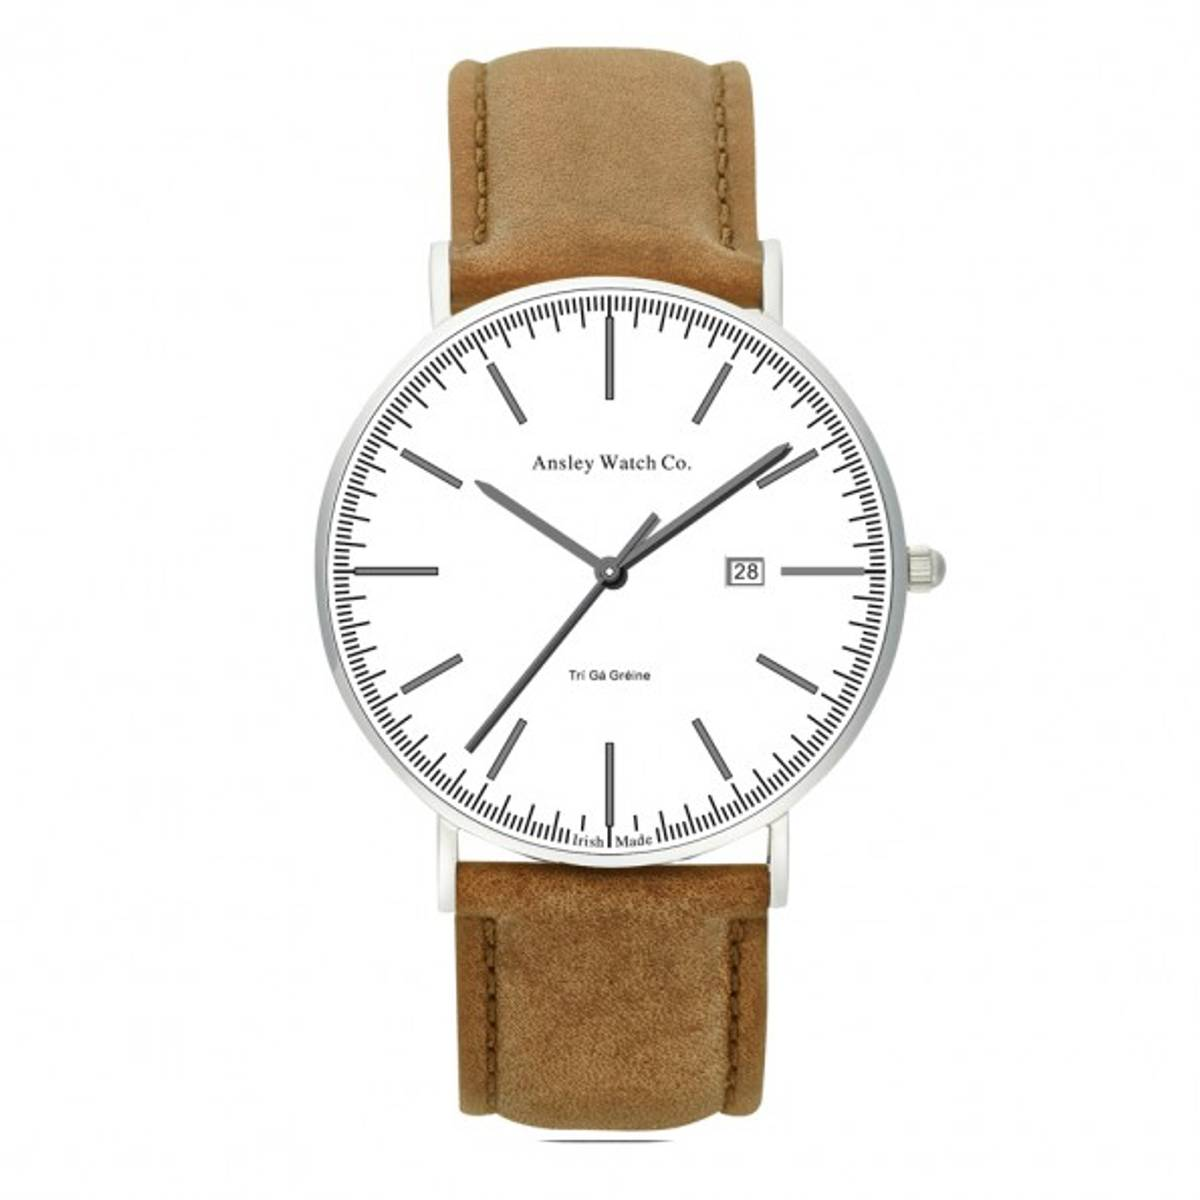 Ansley 434Ansley 43442mm sapphire glassLeather travel walletSilver casing3 ATMCitizen GM10 movementDate functionInterchangeable leather strapAncient symbol for equality engraved on case backMade in Ireland